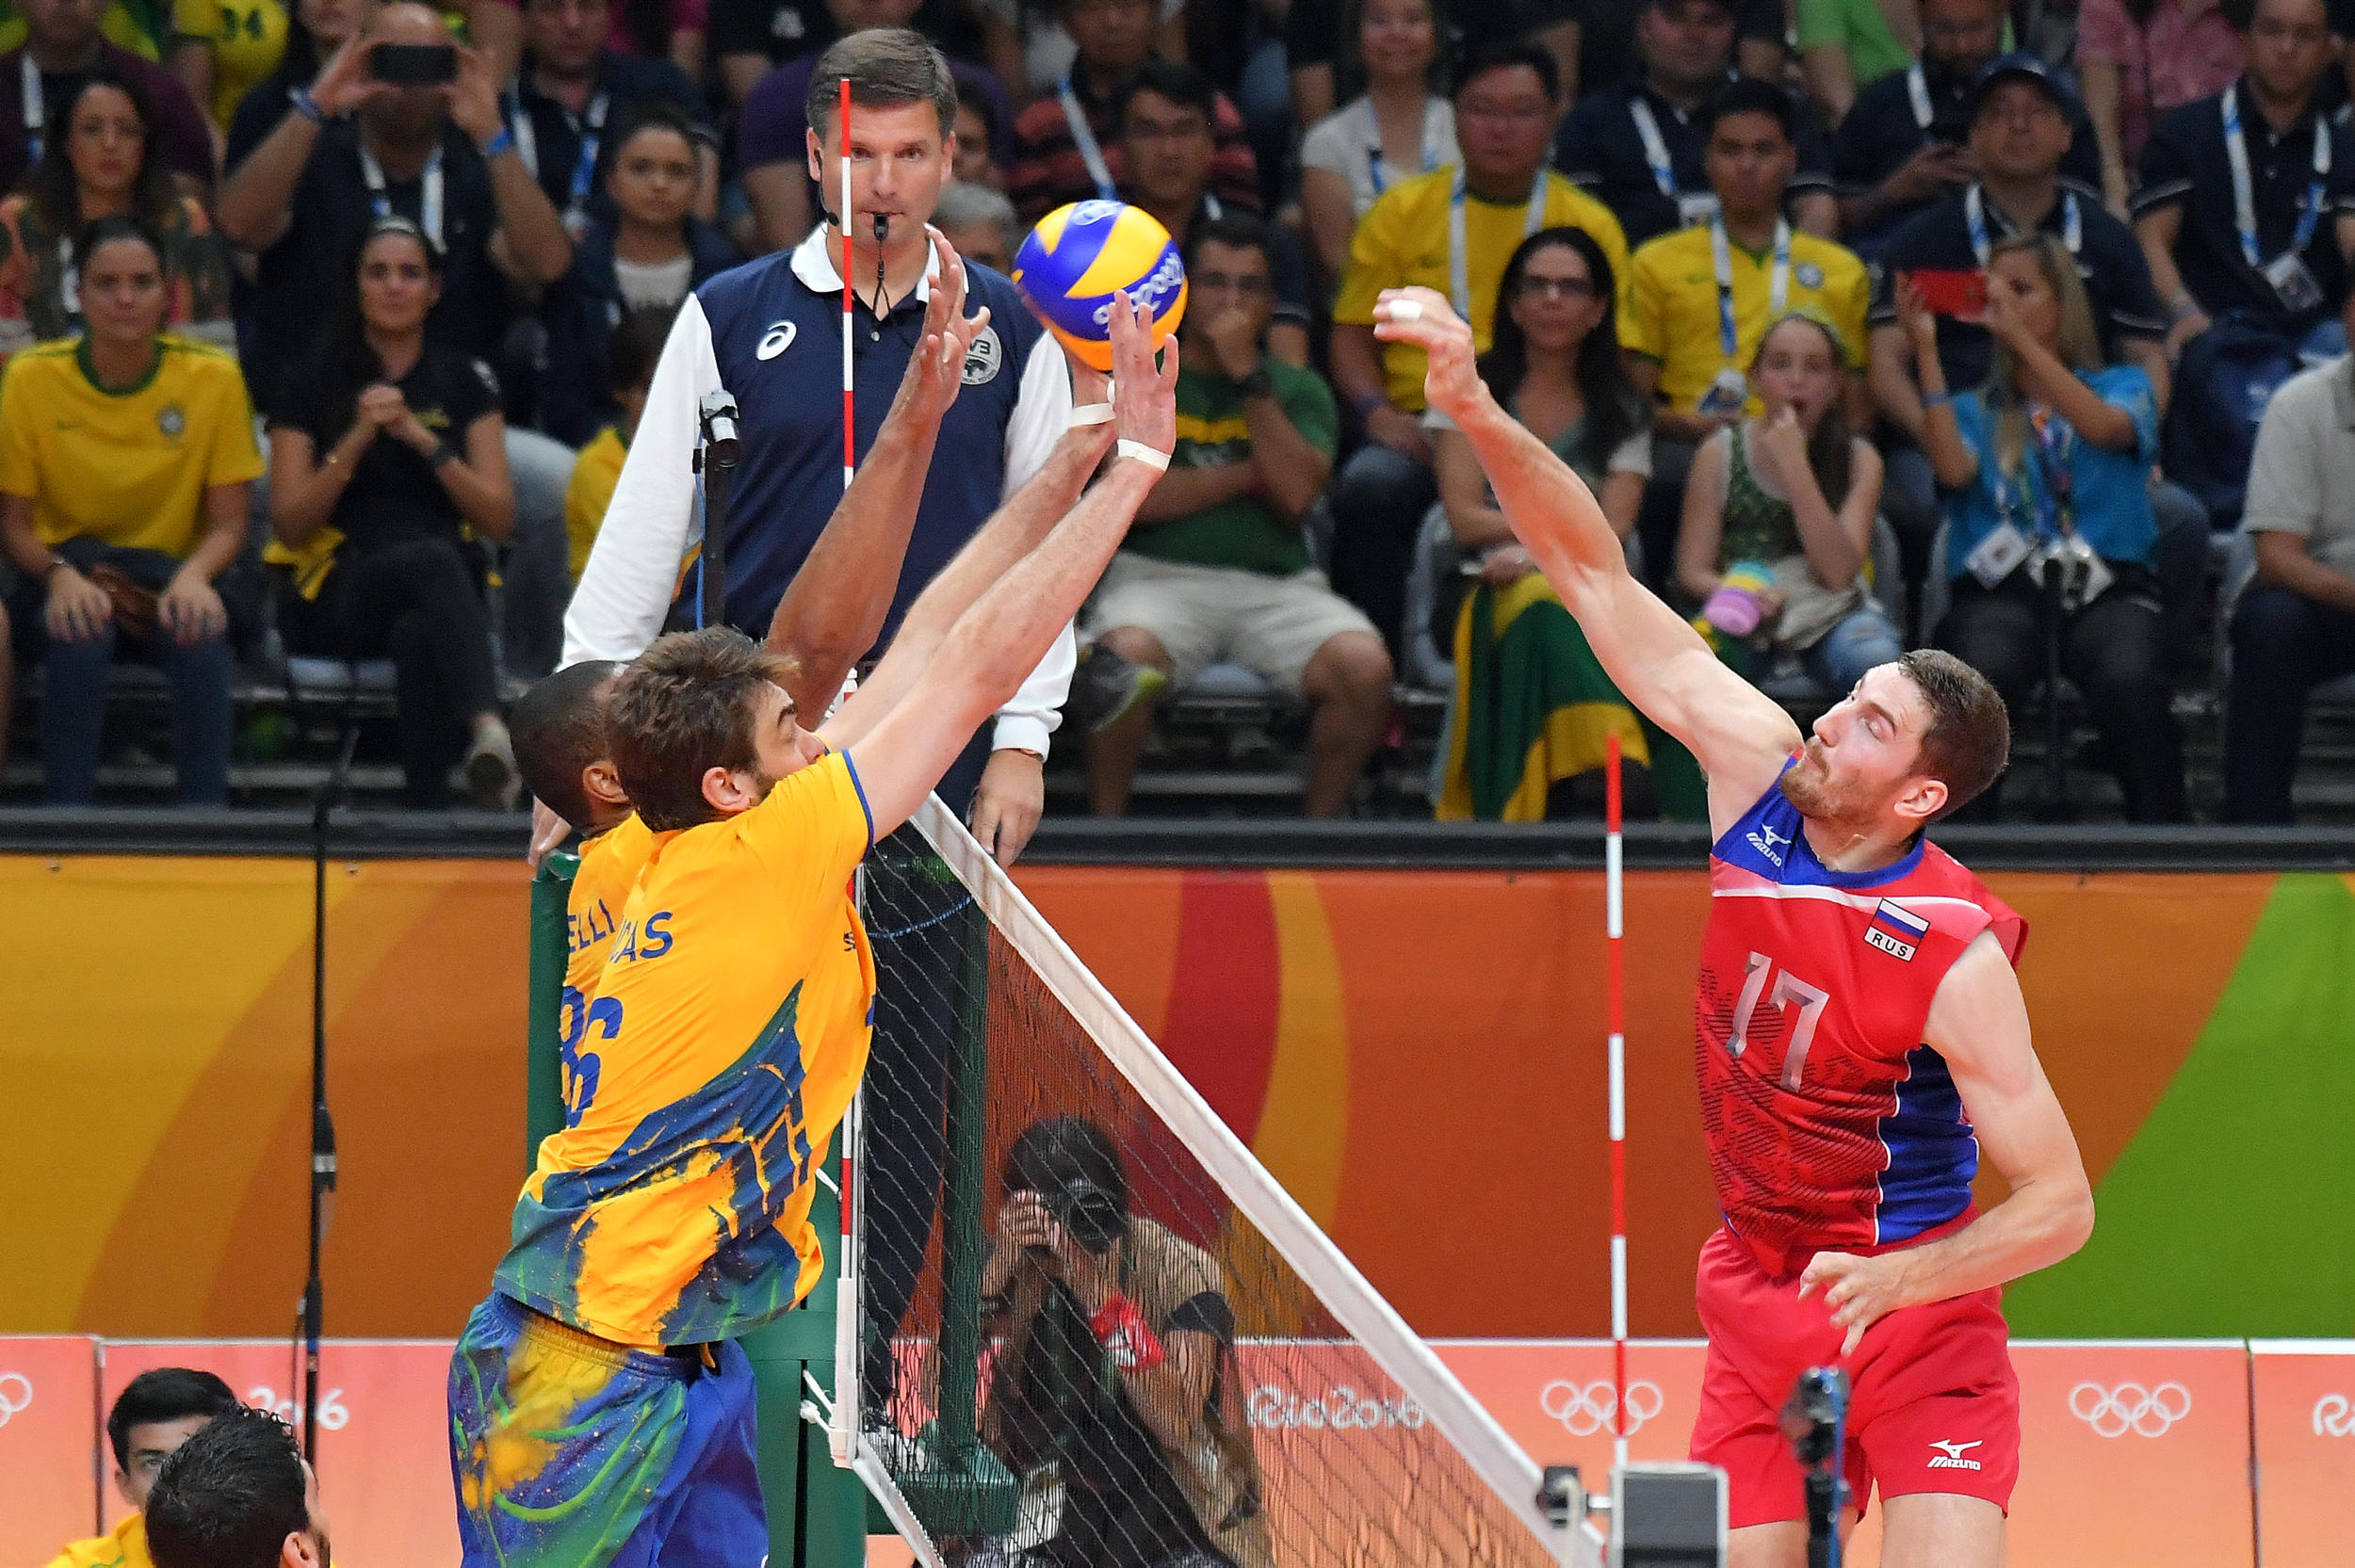 http://www.fivb.org/Vis2009/Images/GetImage.asmx?No=201653486&maxSize=960